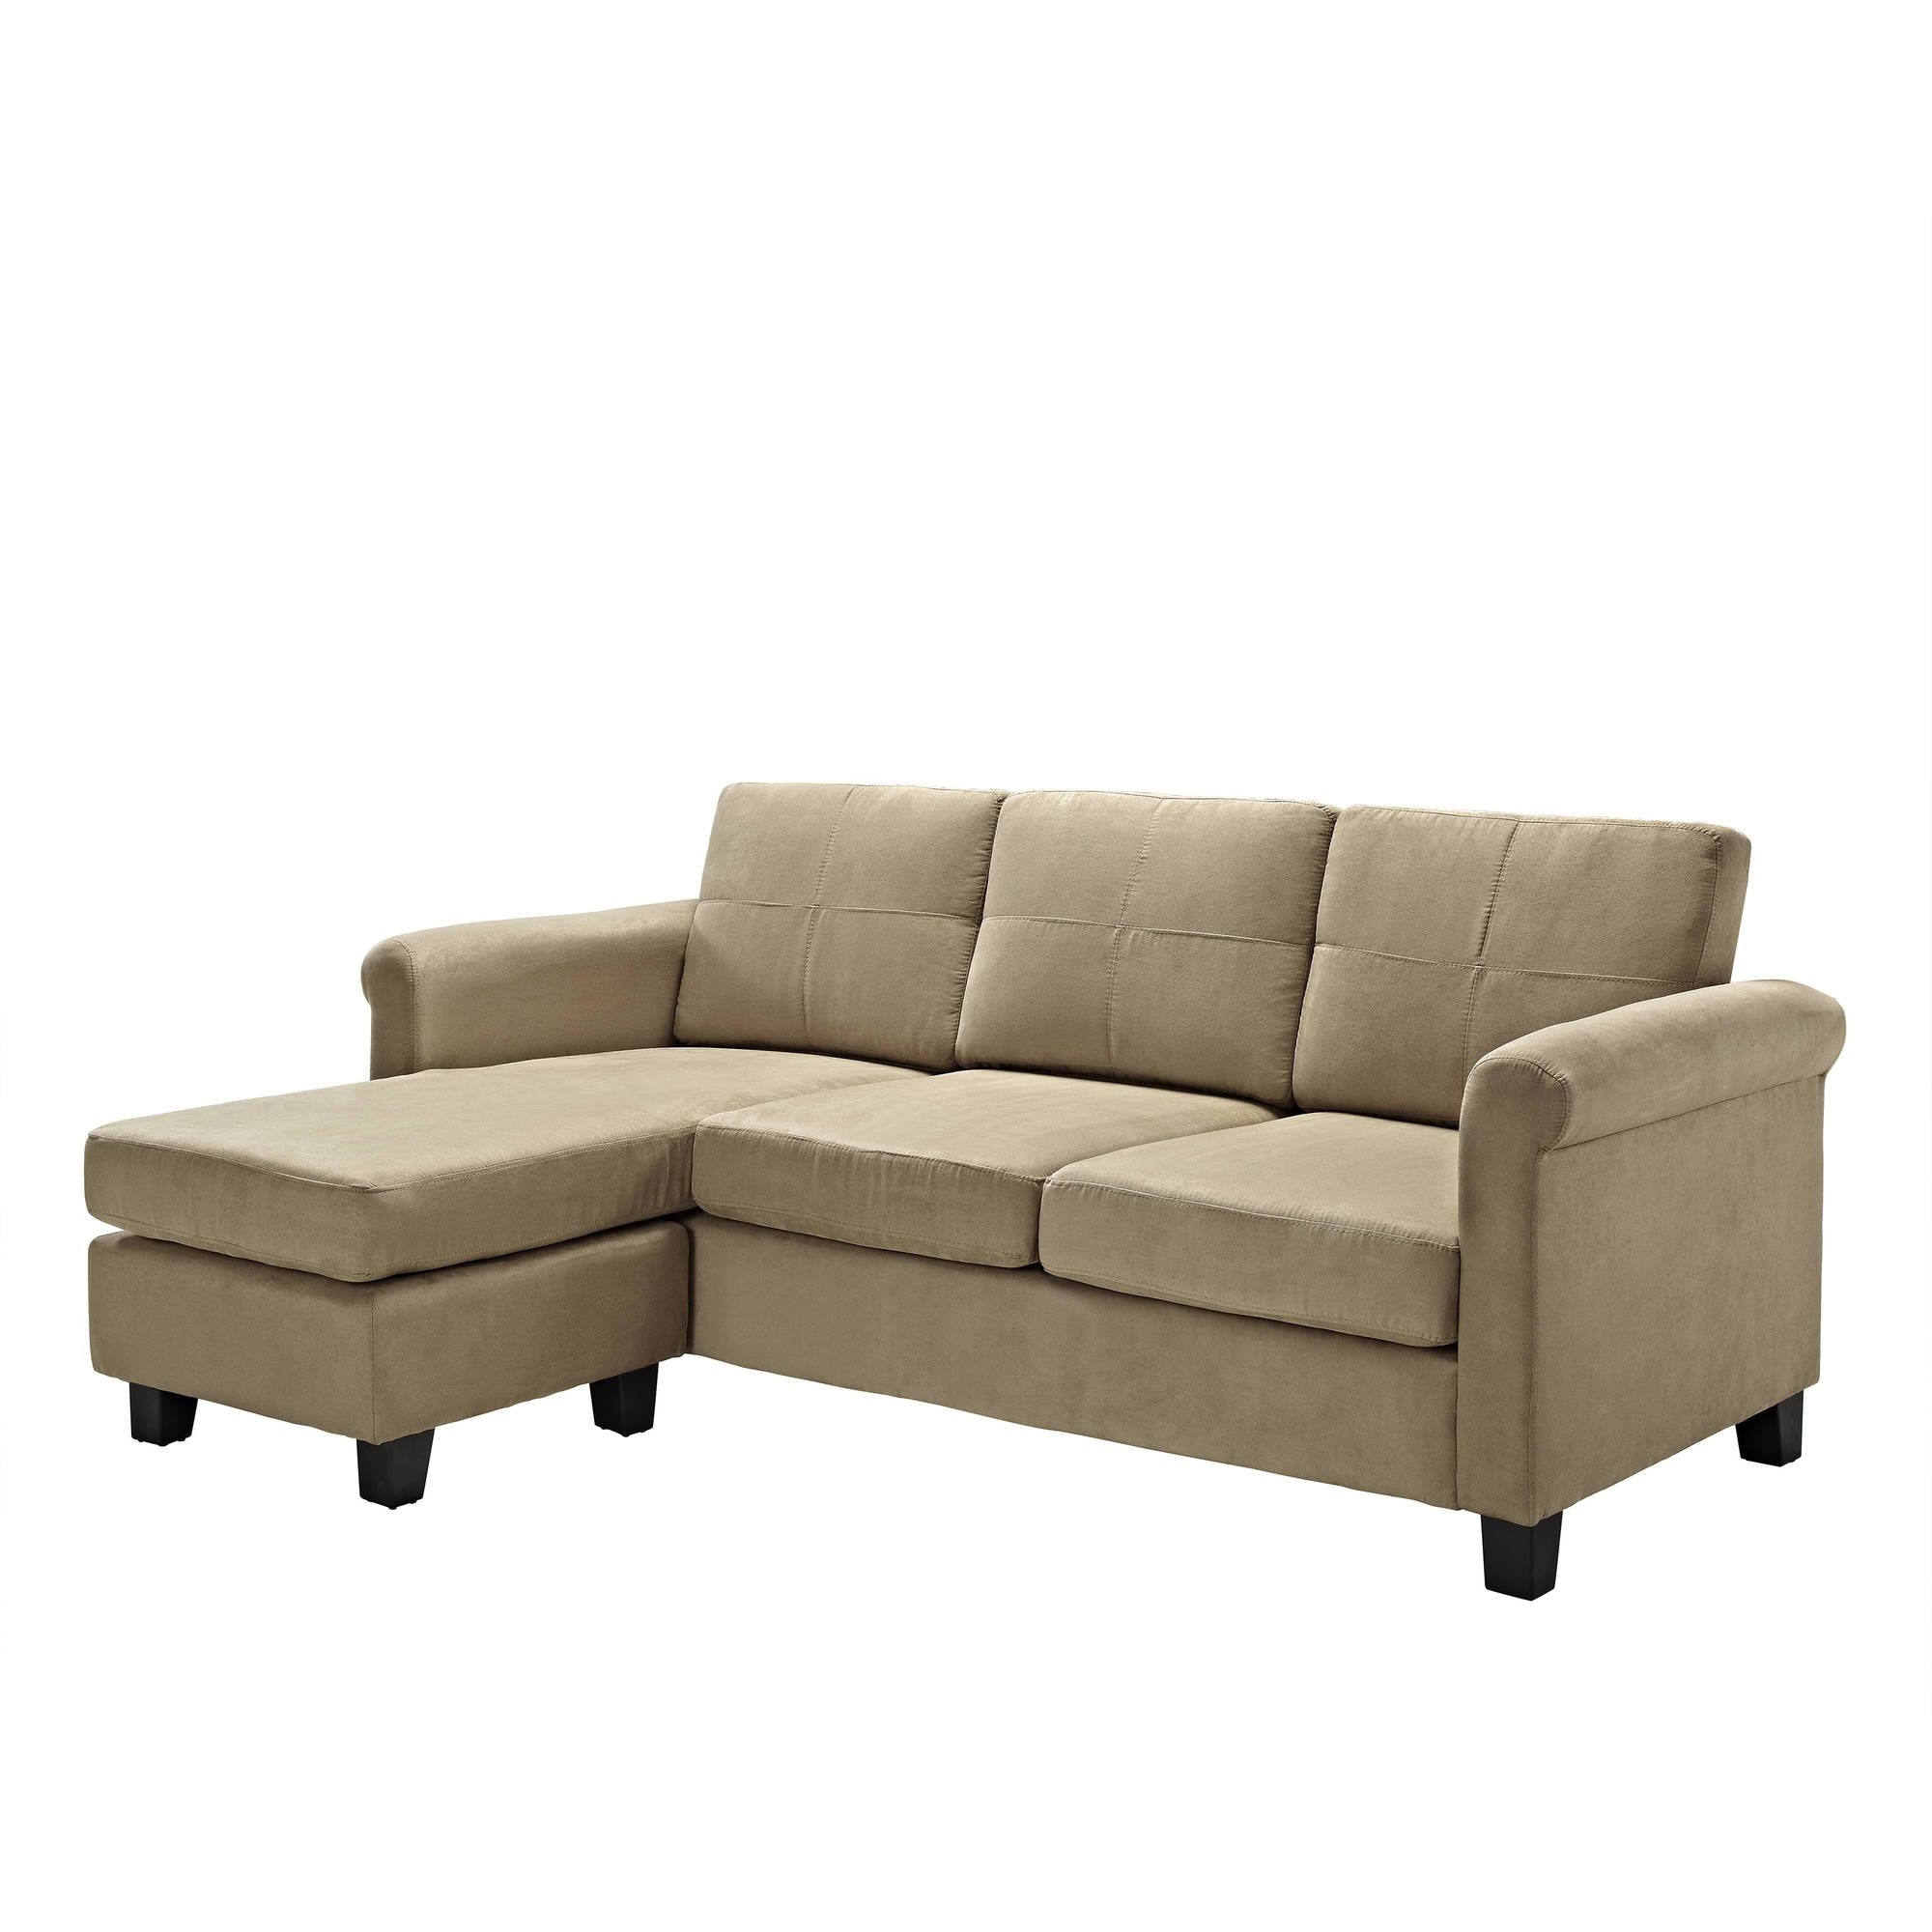 Dorel Living Small Spaces Configurable Sectional Sofa, Multiple With Newest Small Sofa Chaises (View 10 of 15)